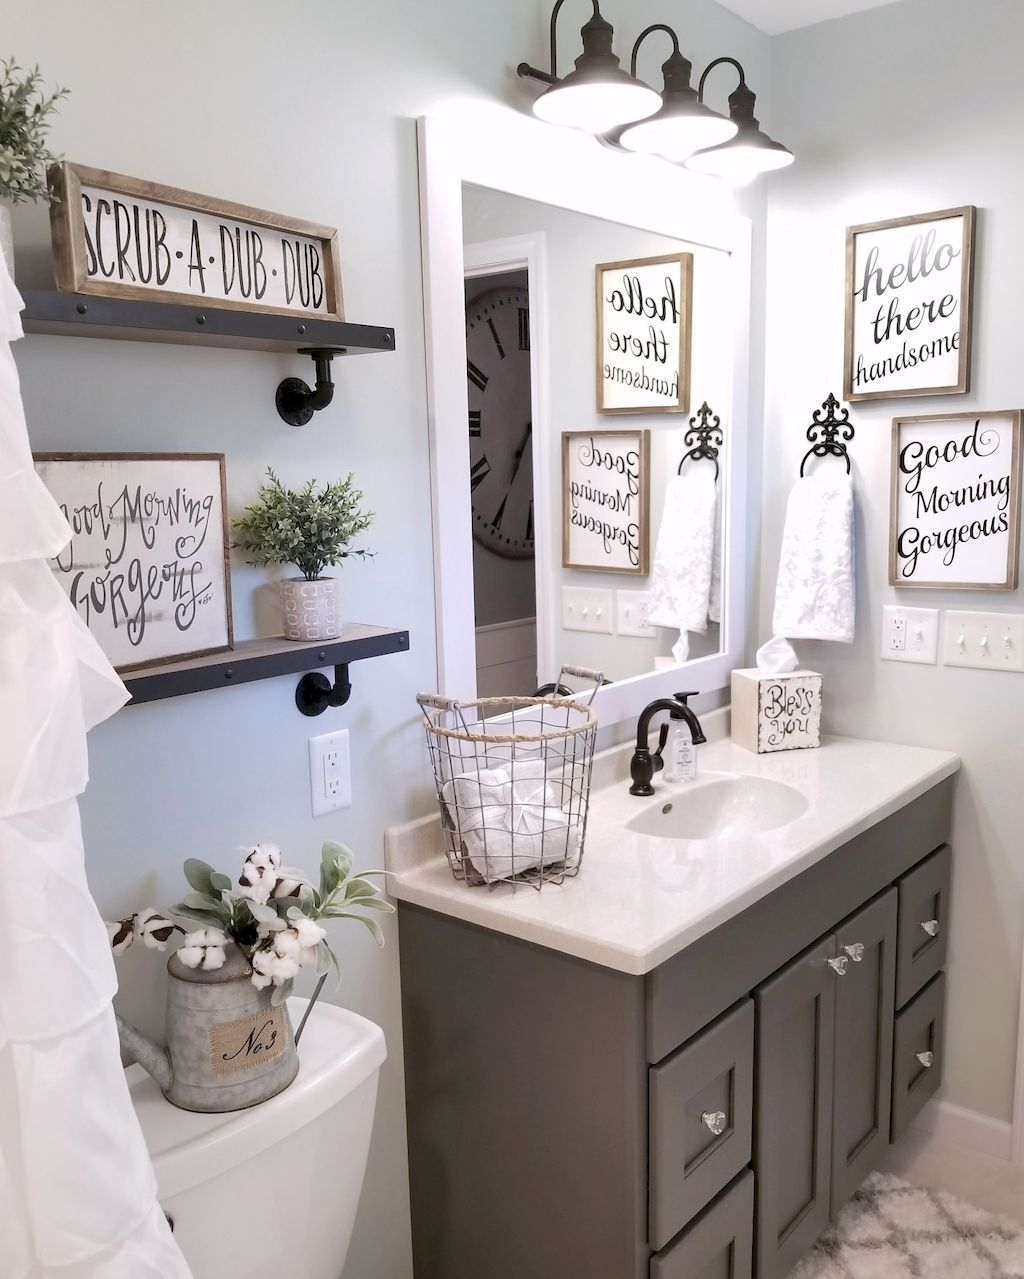 Nice 65 Guest Bathroom Makeover Ideas on A Budget https ...